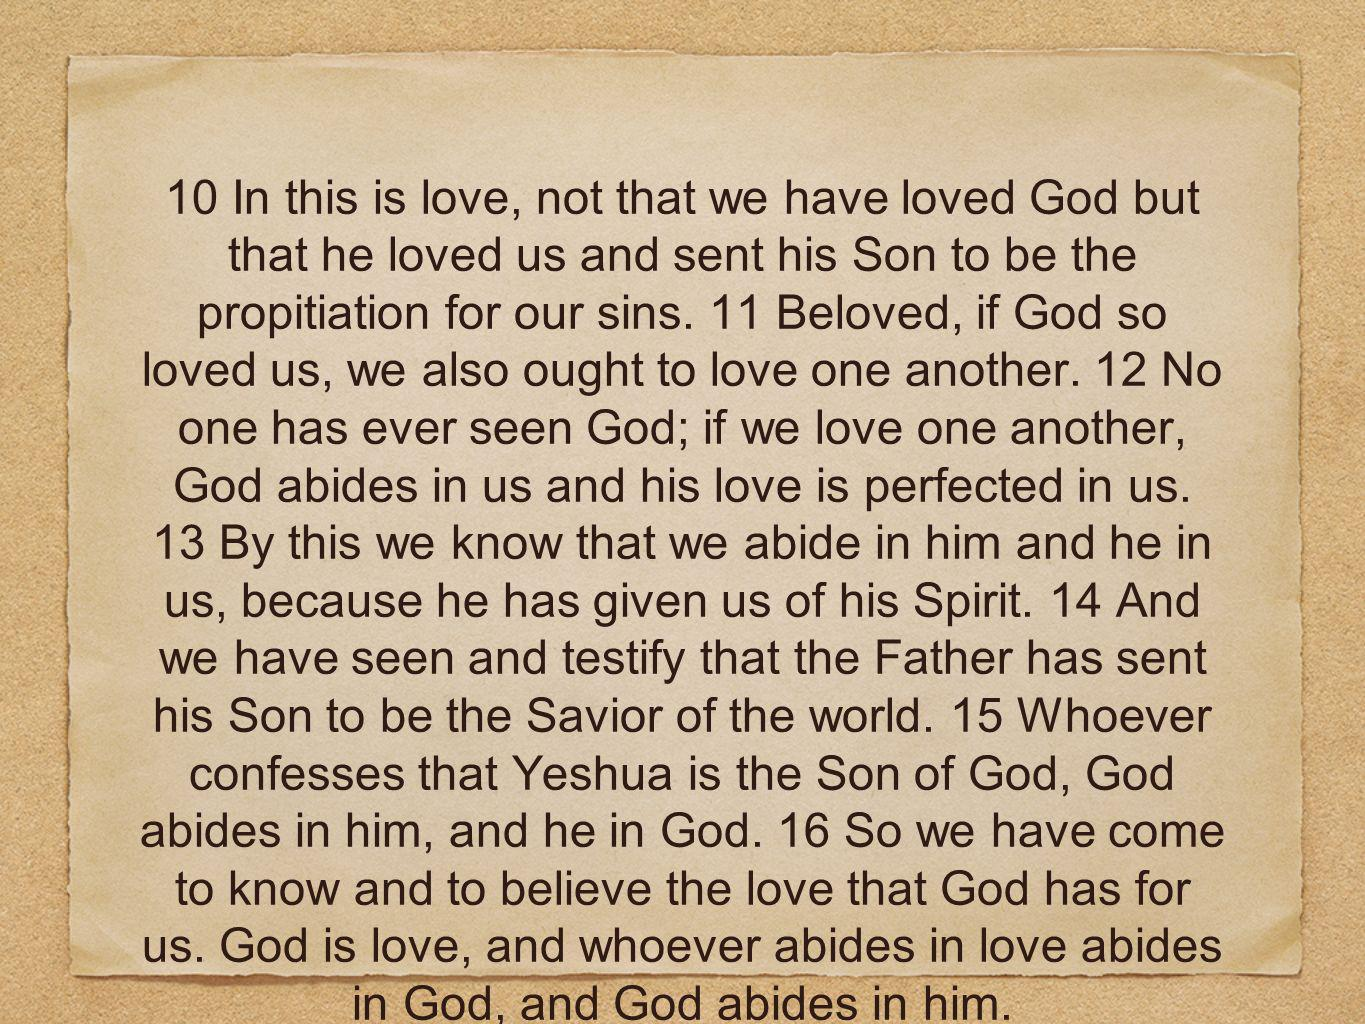 10 In this is love, not that we have loved God but that he loved us and sent his Son to be the propitiation for our sins. 11 Beloved, if God so loved